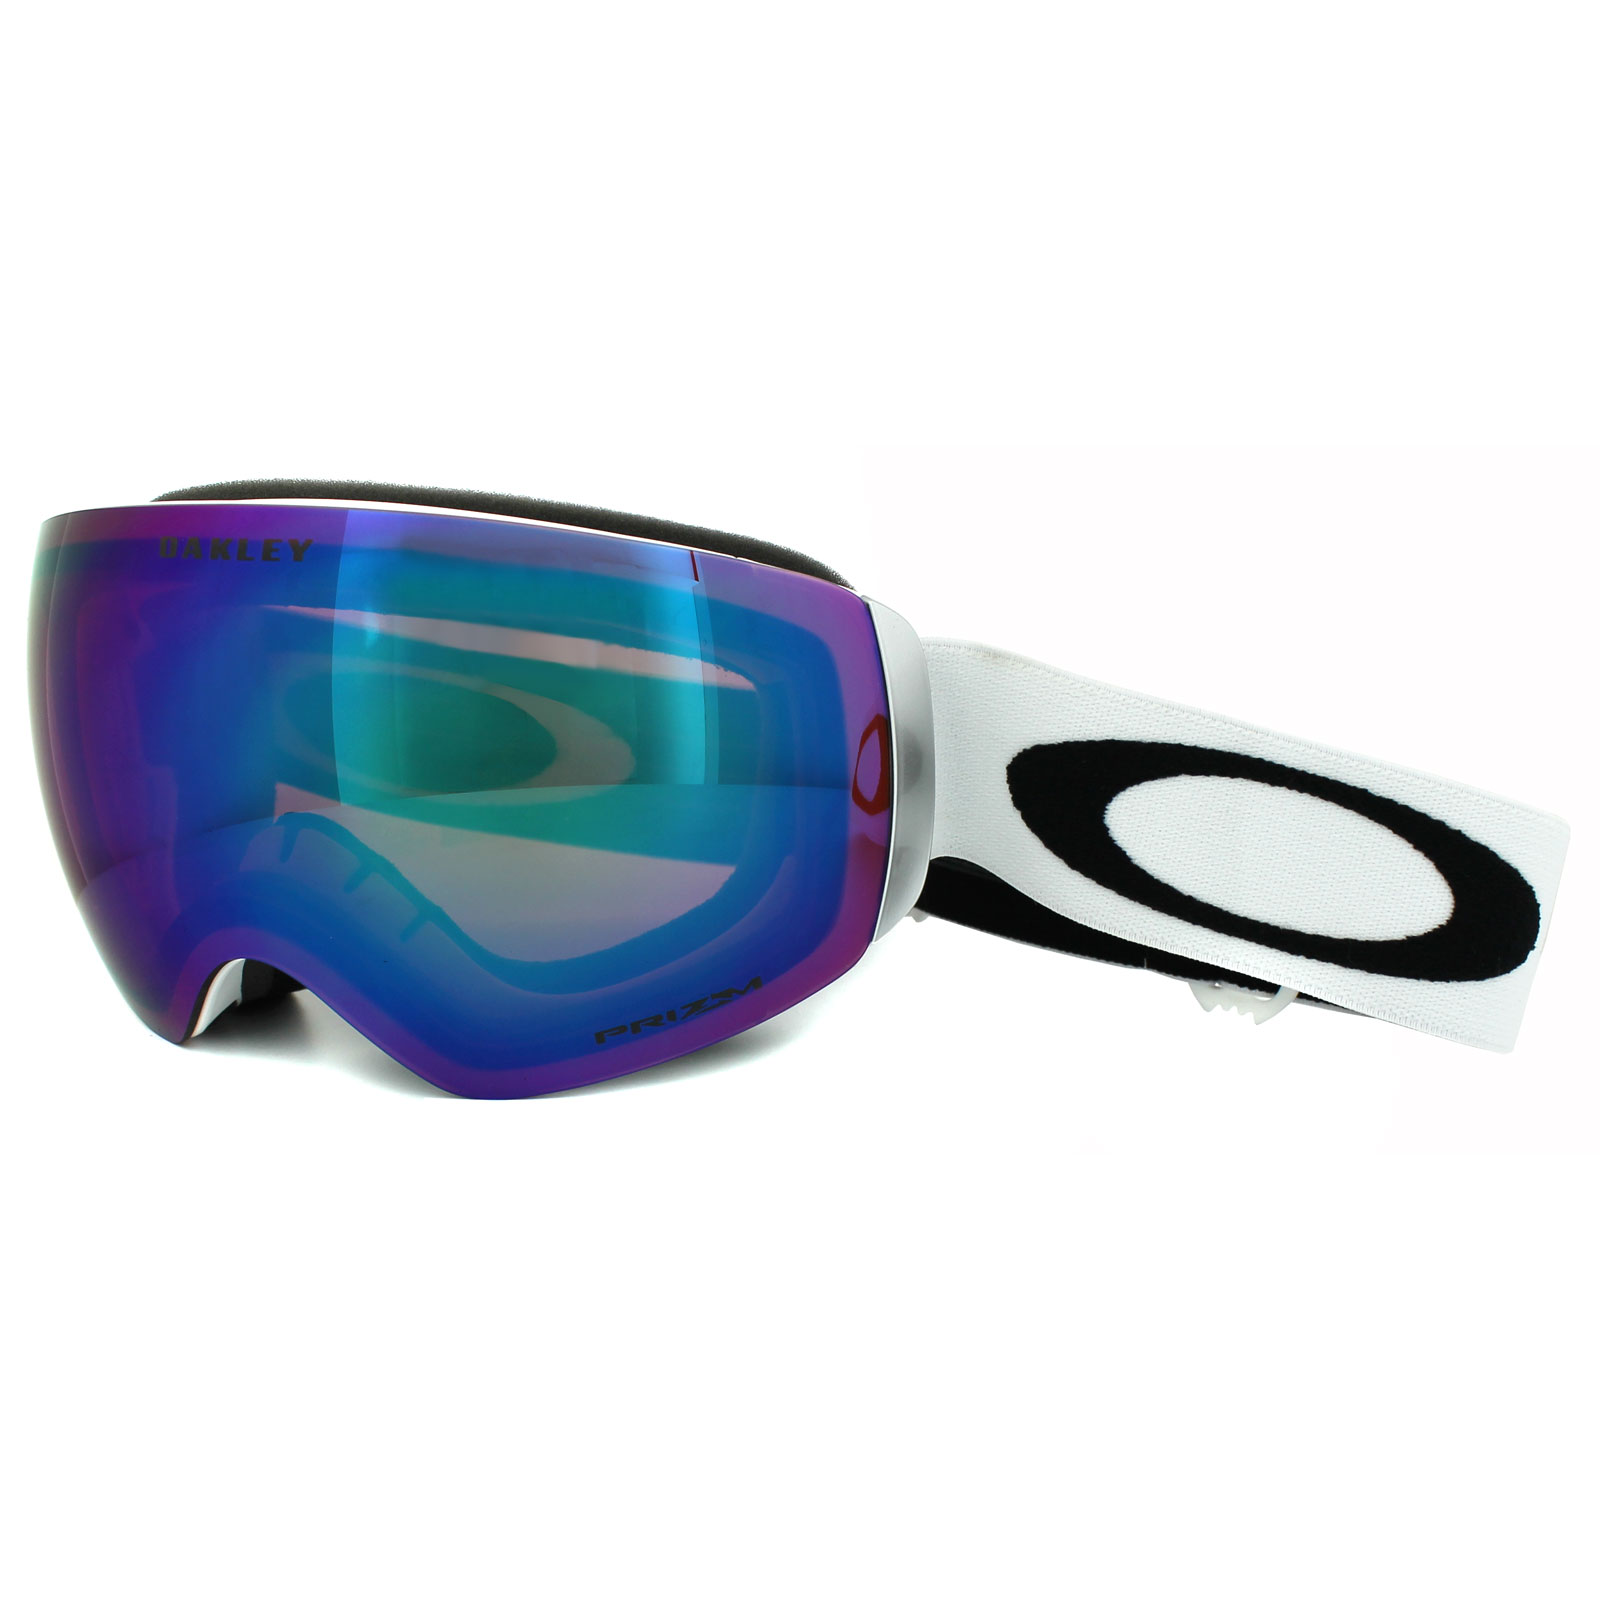 oakley goggles white  Oakley Ski Snow Goggles Flight Deck XM OO7064-23 Matt White Prizm ...